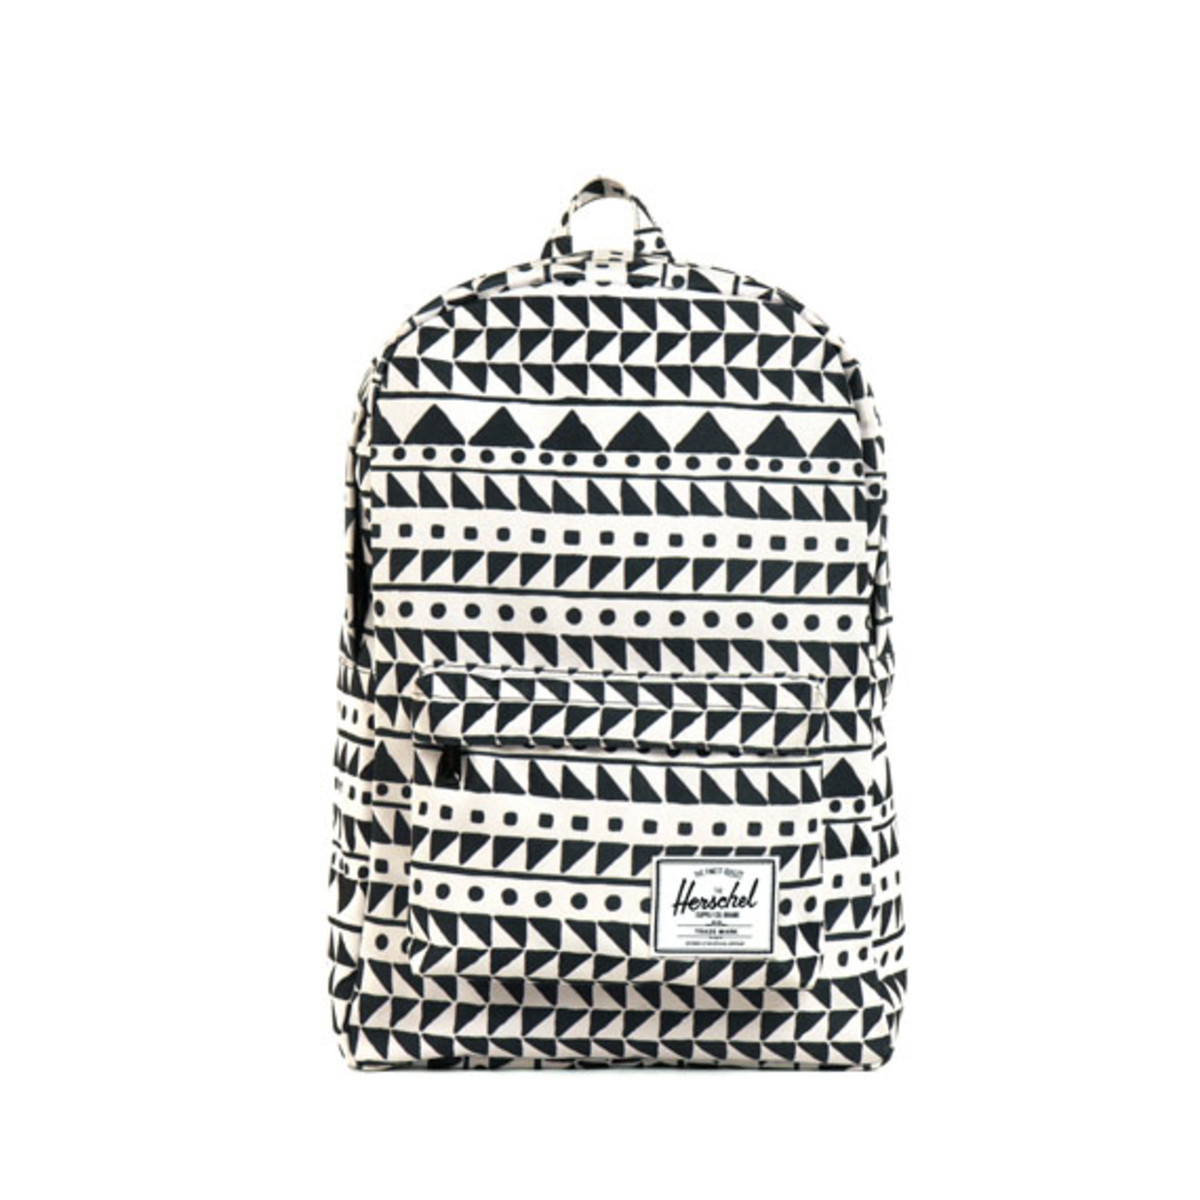 herschel-supply-co-fall-2013-classic-prints-02